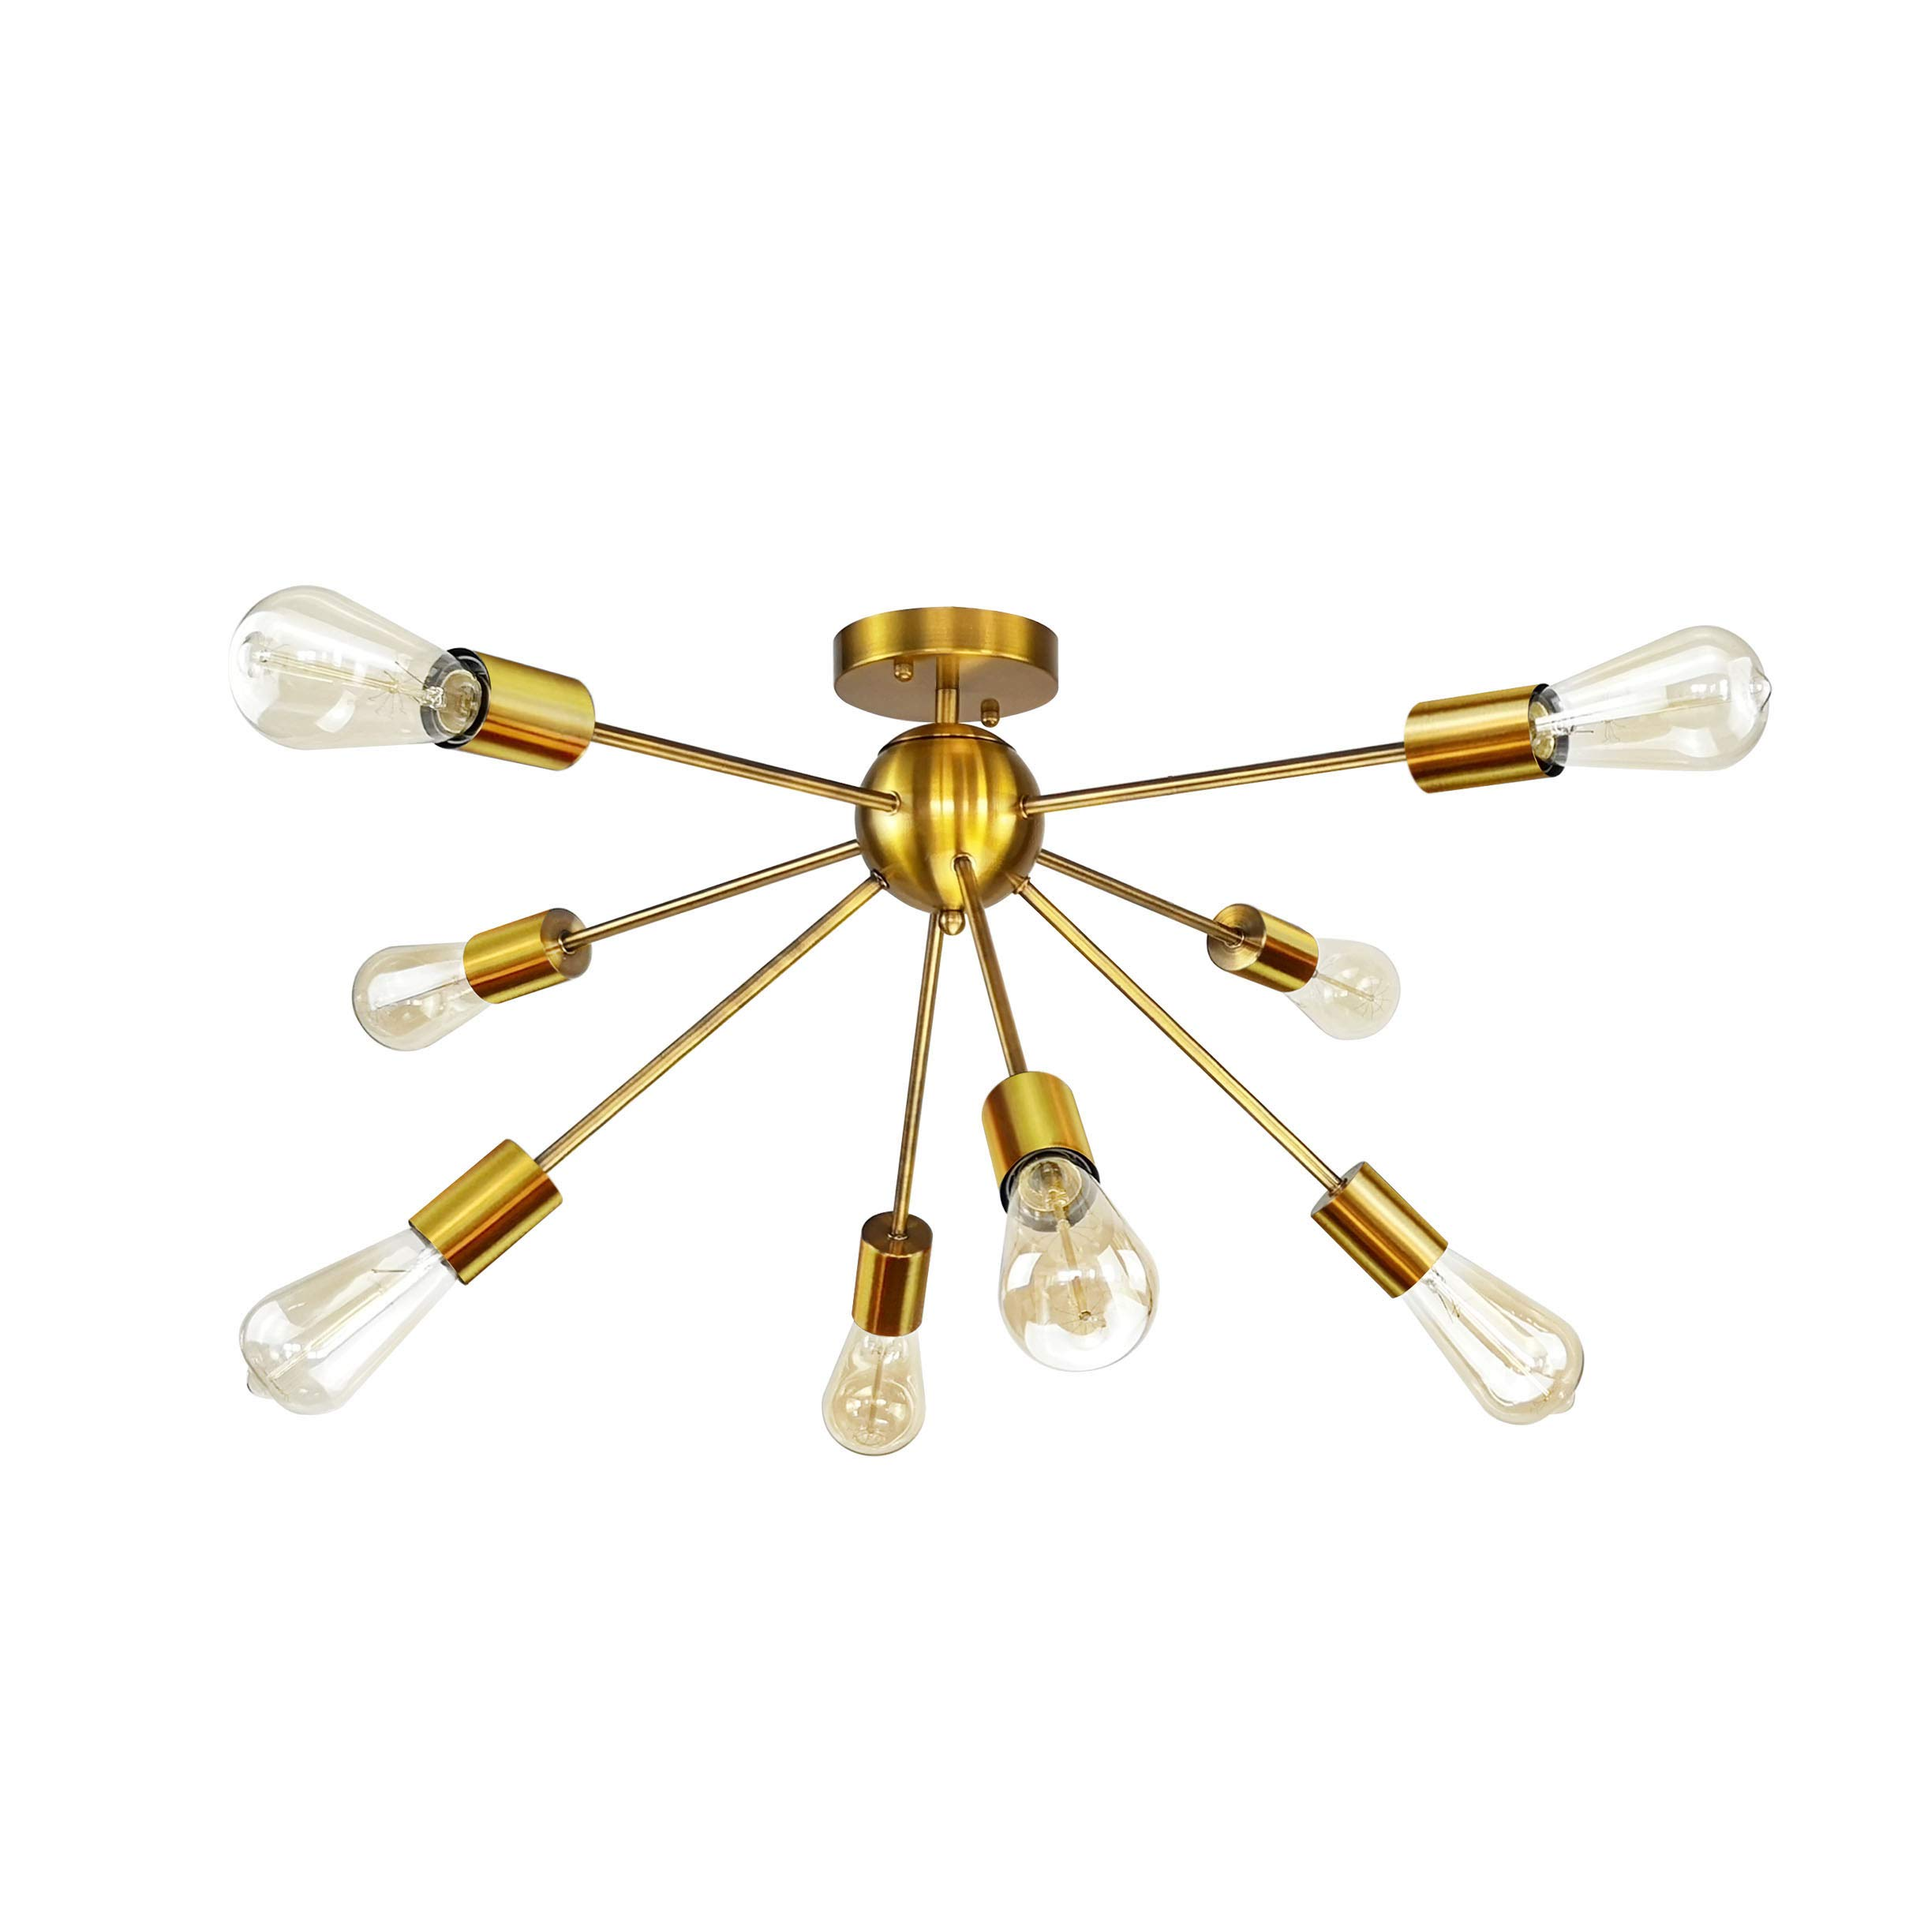 8-Light Sputnik Chandelier Brushed Brass Semi Flush Mount Ceiling Light Modern Pendant Light by LUMANS